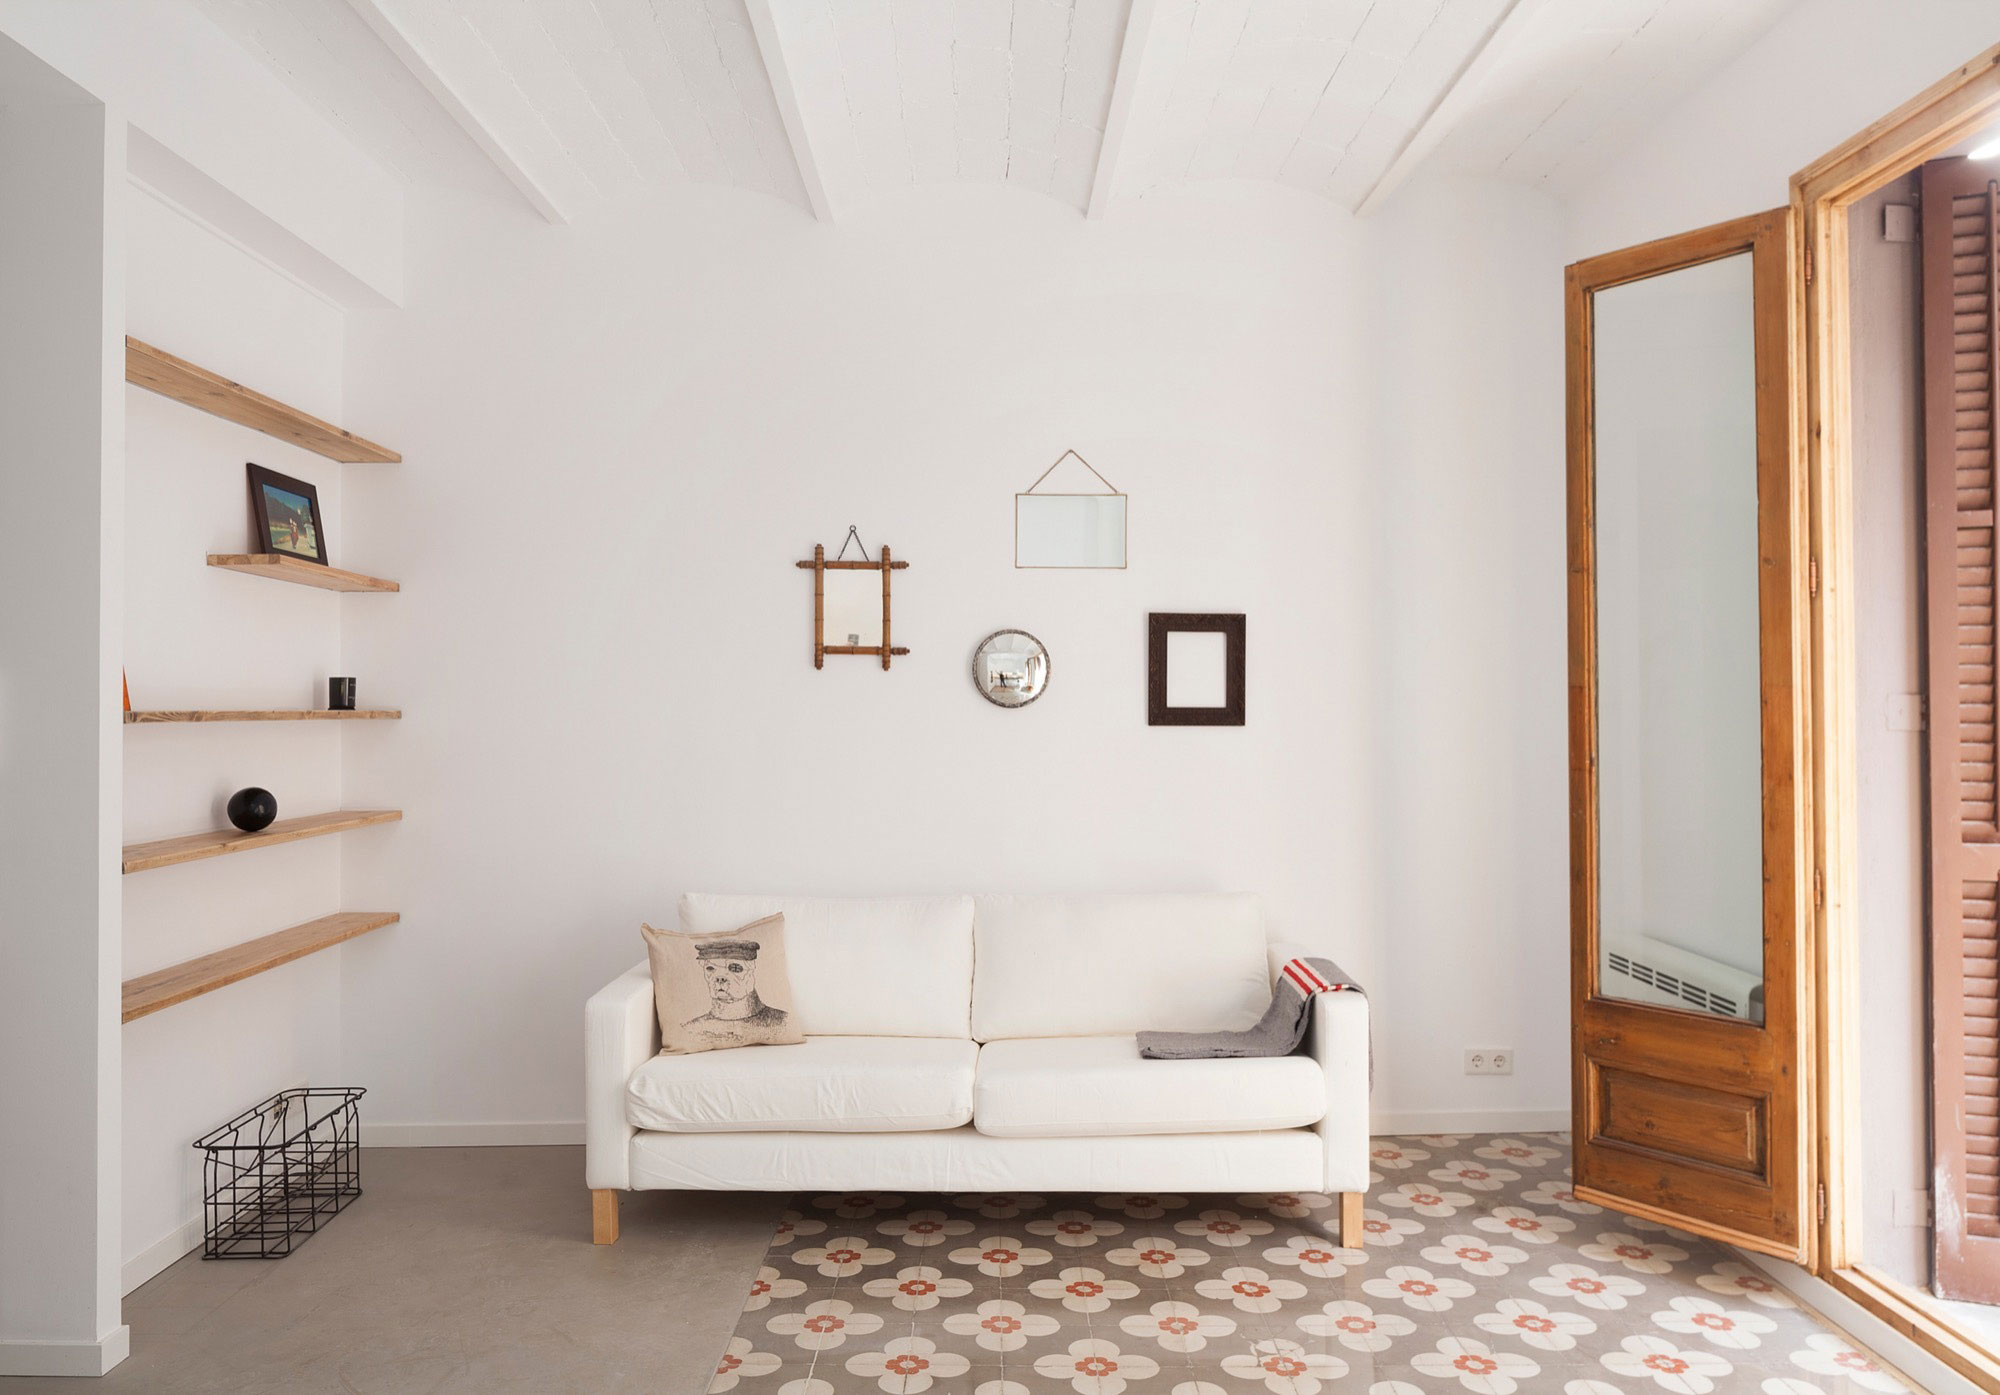 A53 & Marc Mazeres Come Together to Create a Bright and Luminous Home in La Barceloneta